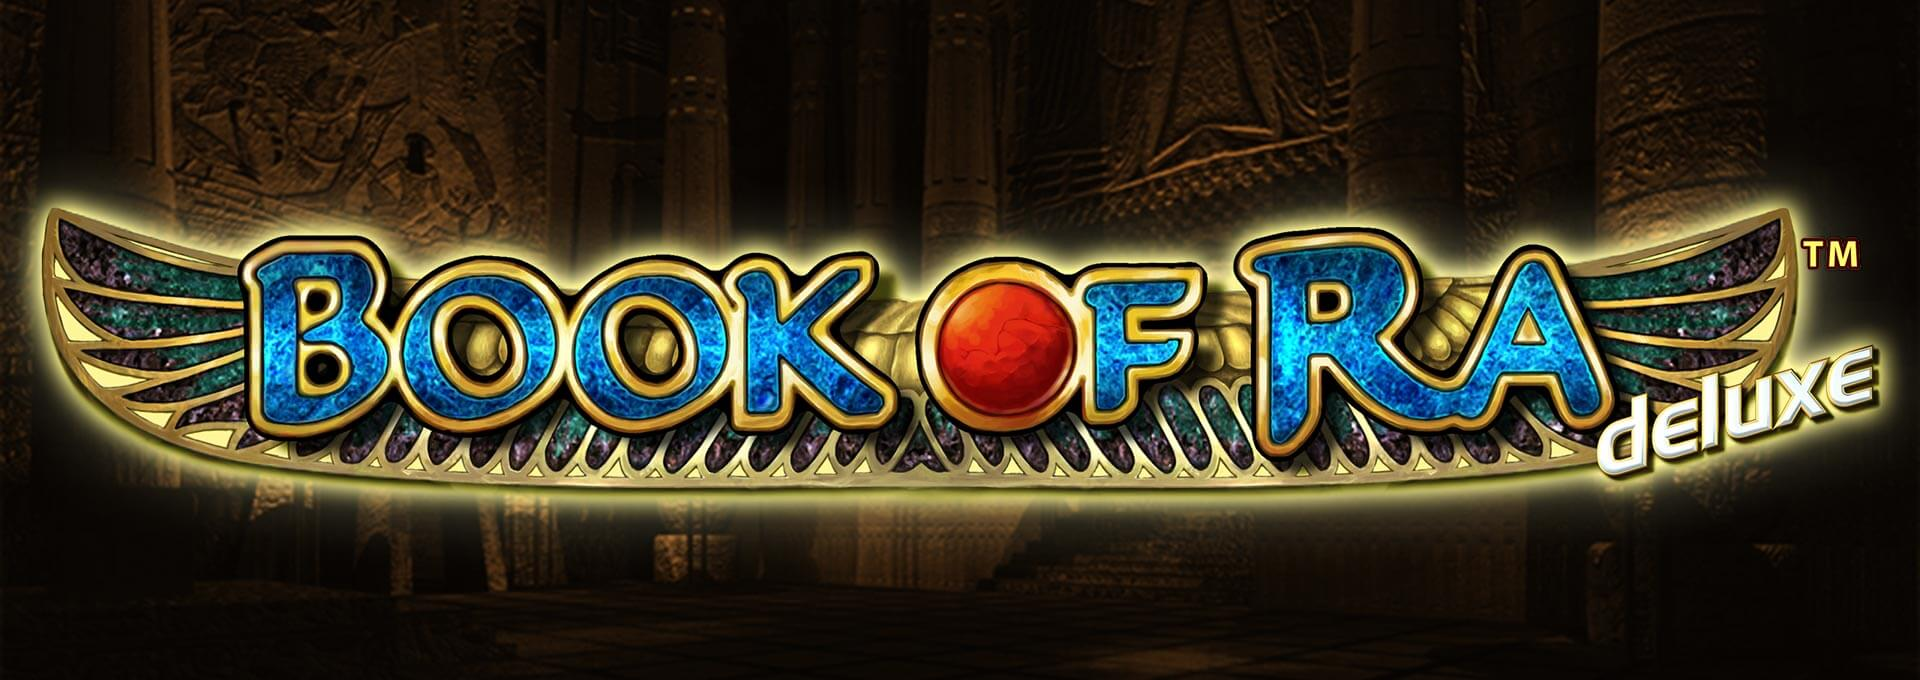 online casino gambling site book of ra mobile